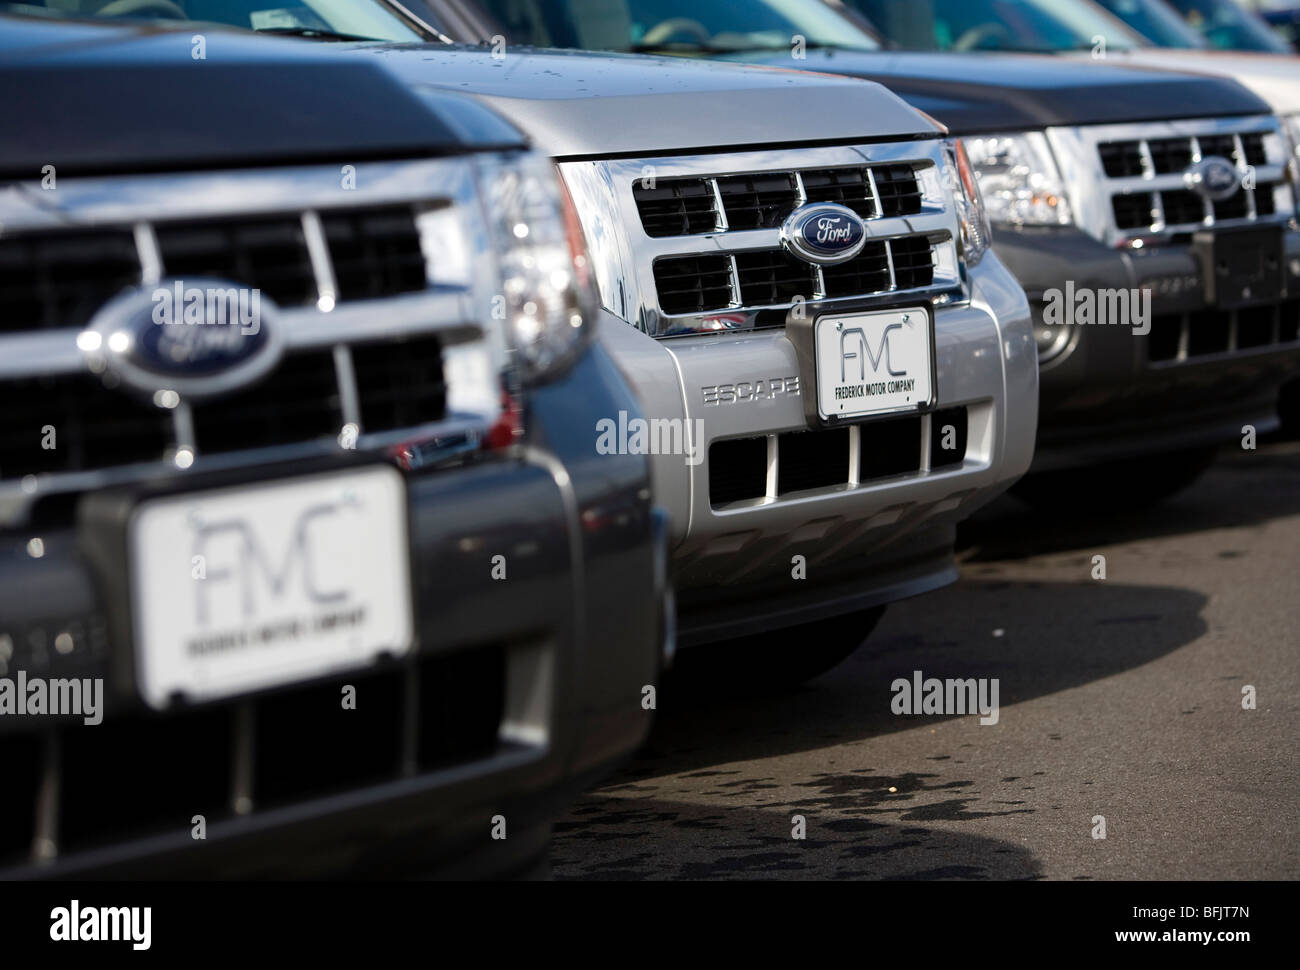 ford dealership in suburban maryland stock photo royalty free image. Cars Review. Best American Auto & Cars Review